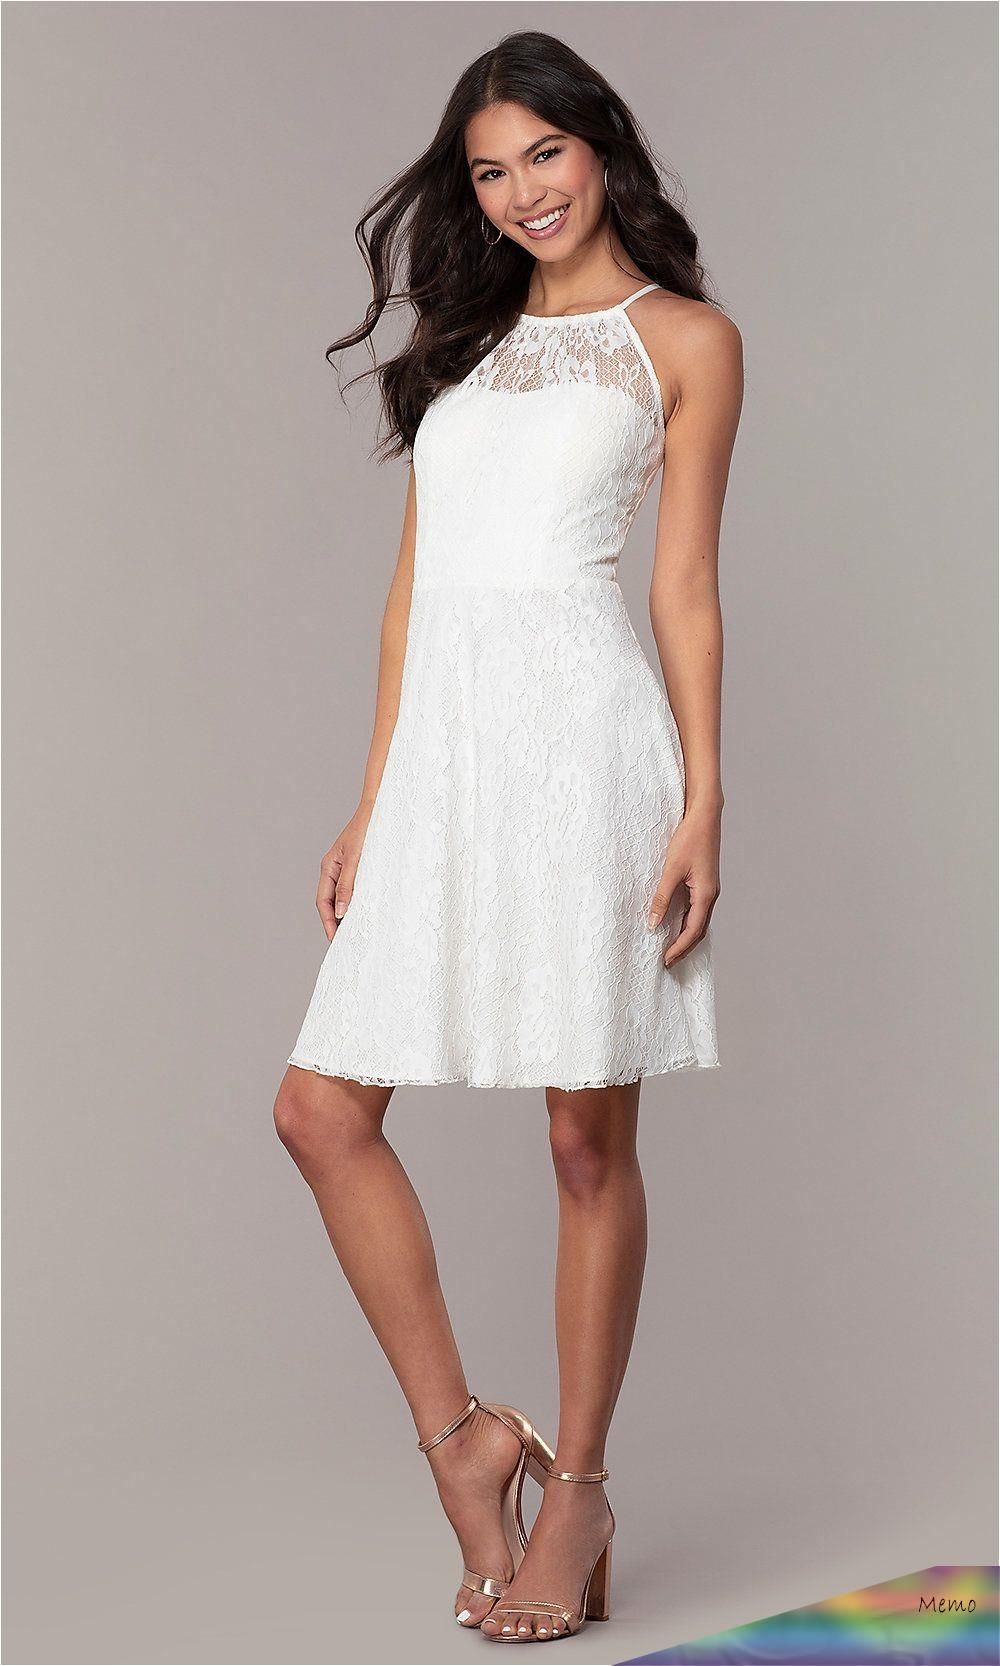 Jul 22 2019 This Pin Was Discovered By Galit Yaffe Discover And Save Your Own Pins On In 2020 White Short Dress Short Graduation Dresses White Lace Party Dress [ 1666 x 1000 Pixel ]